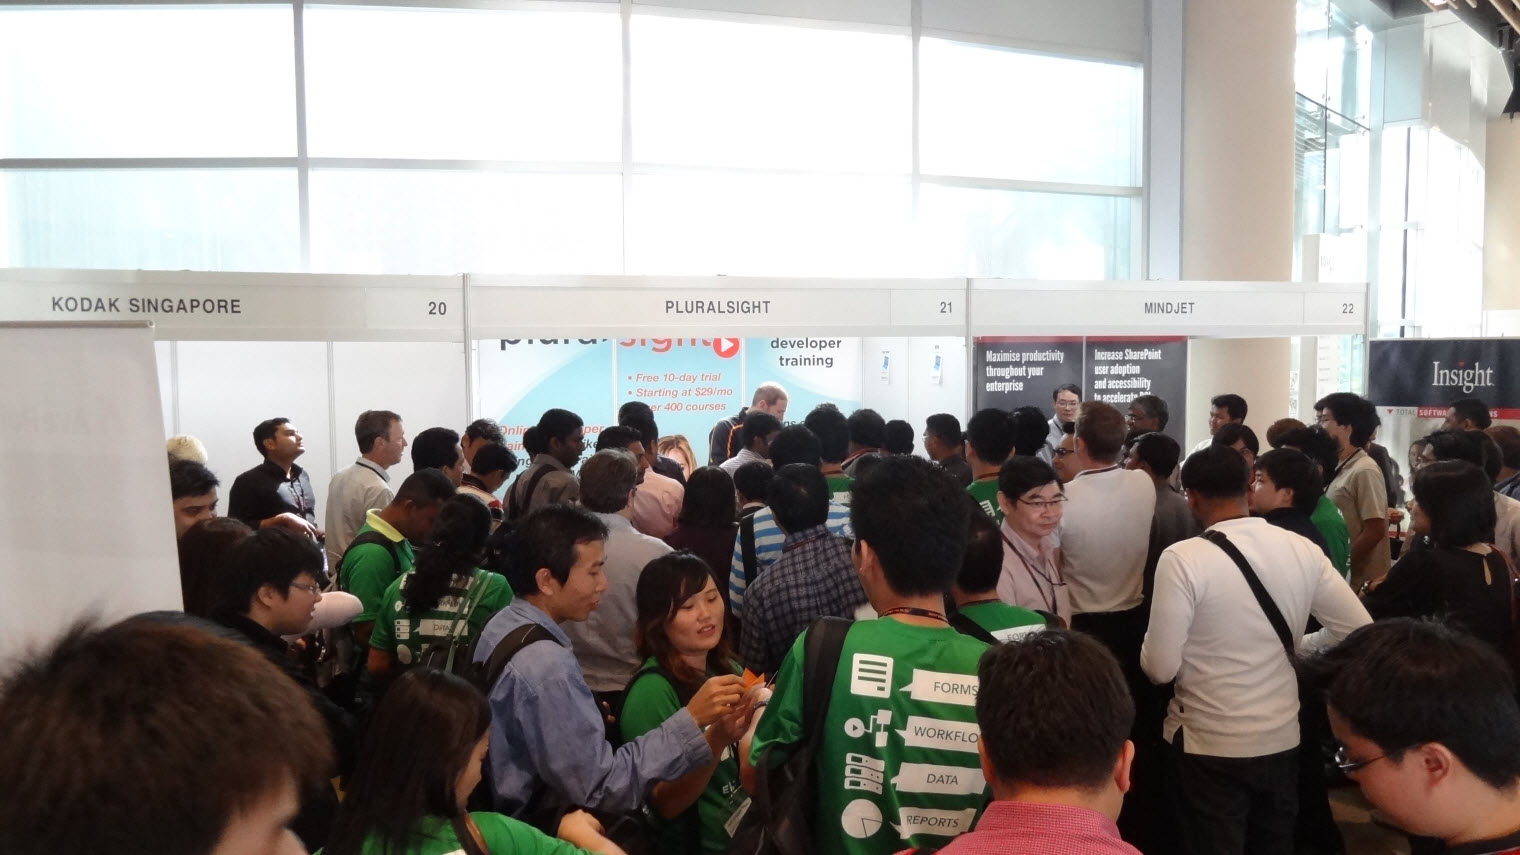 SQLAuthority News - Great Experience at SharePoint Conference Singapore 2013 SEASPC3